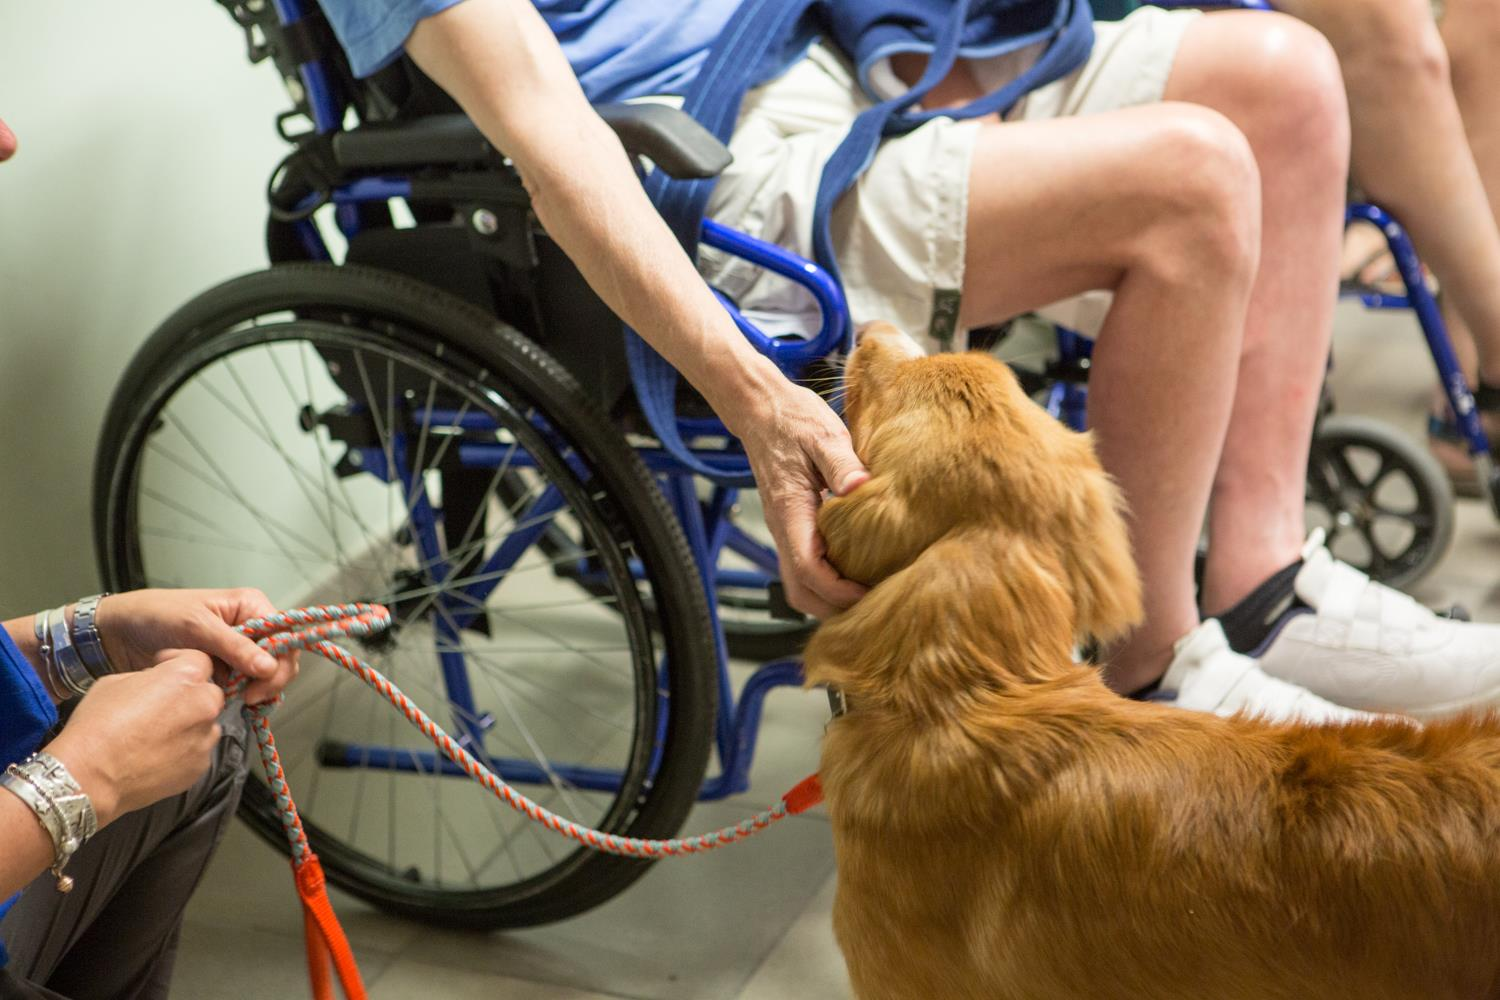 Intervento pet therapy con il cane presso disabile in sedia a rotelle